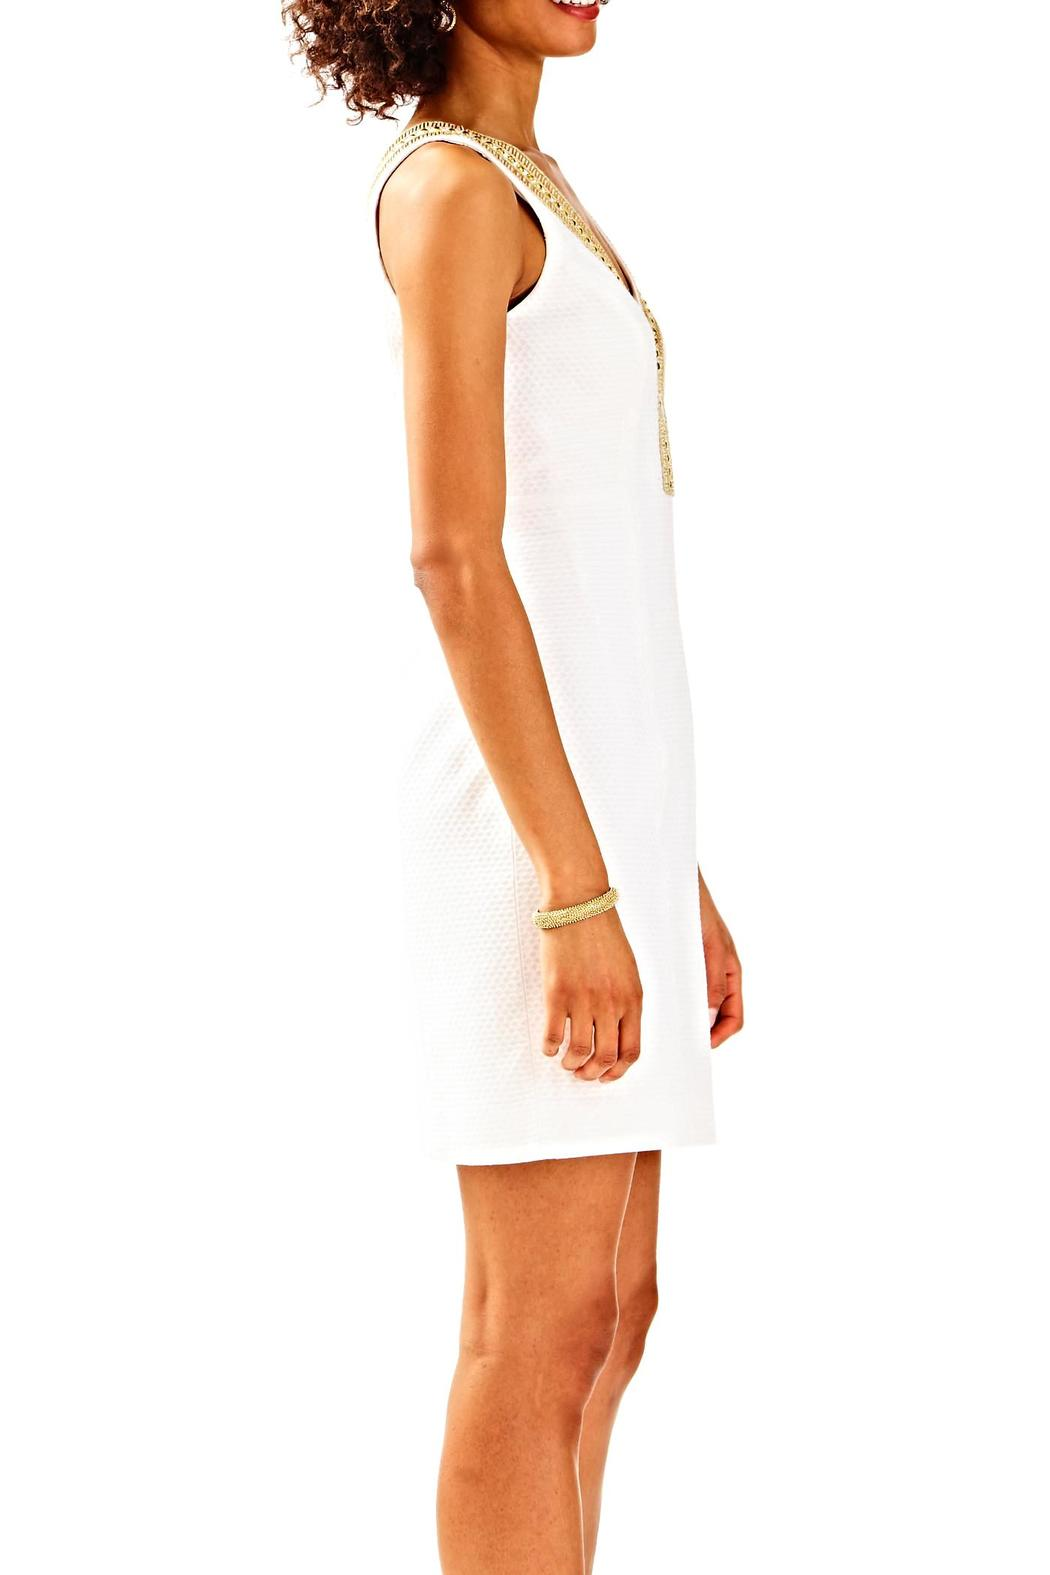 Lilly Pulitzer Eliot Shift Dress - Side Cropped Image